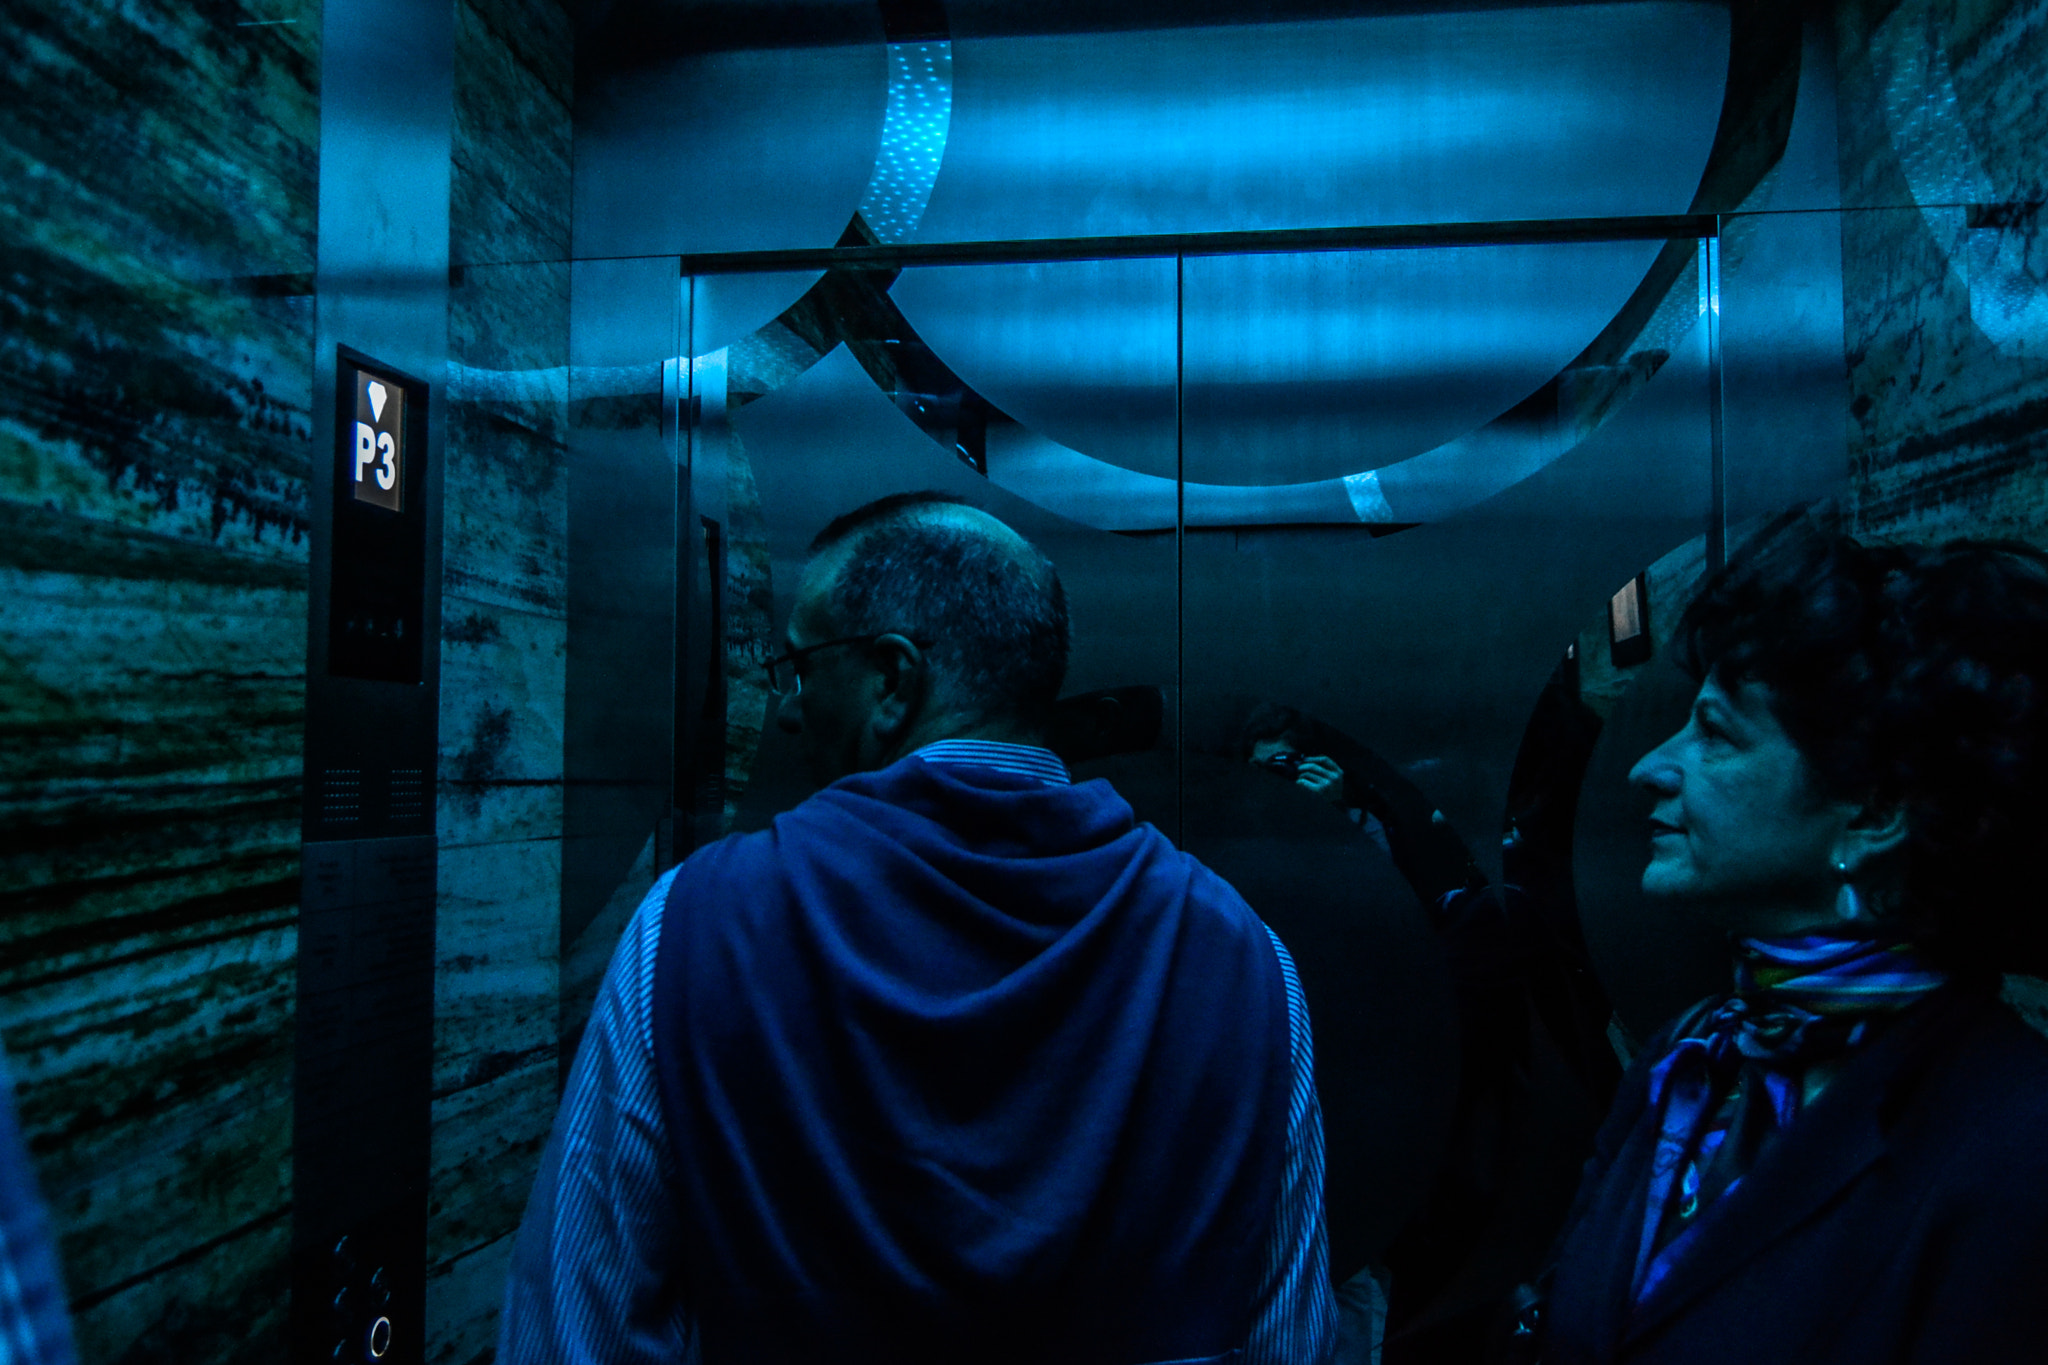 Photograph In the lift. by Ludovica Colacino on 500px